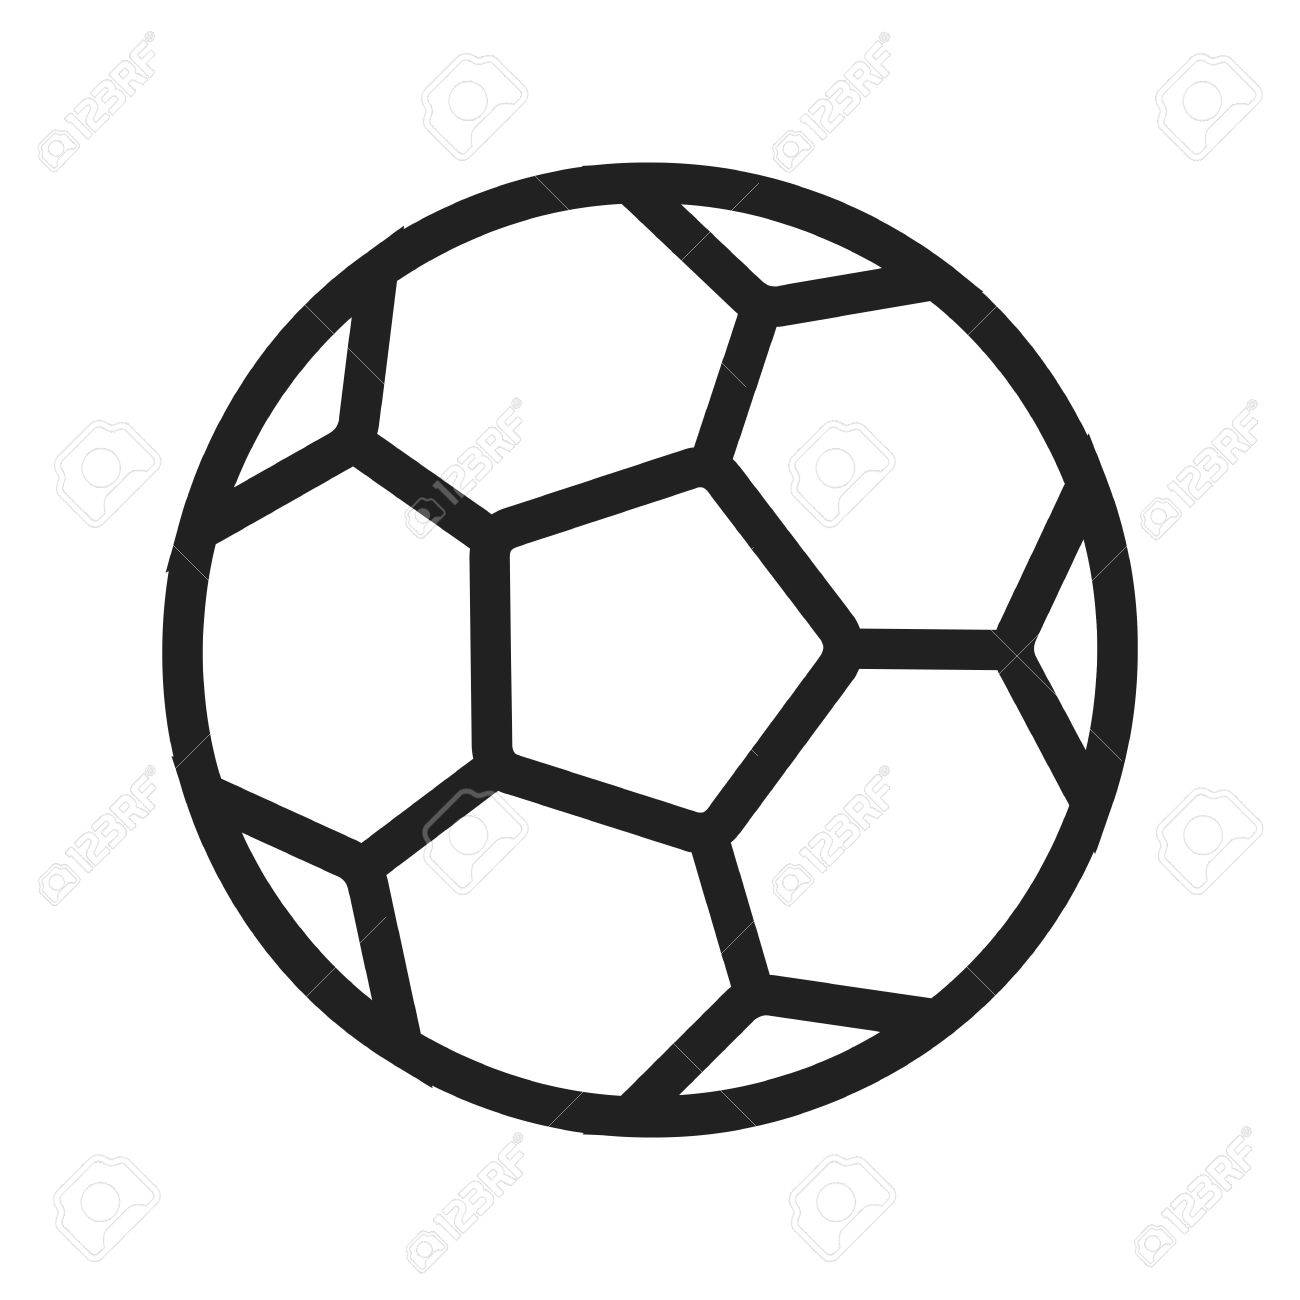 football icon royalty free cliparts vectors and stock illustration rh 123rf com free vector football download free vector football download